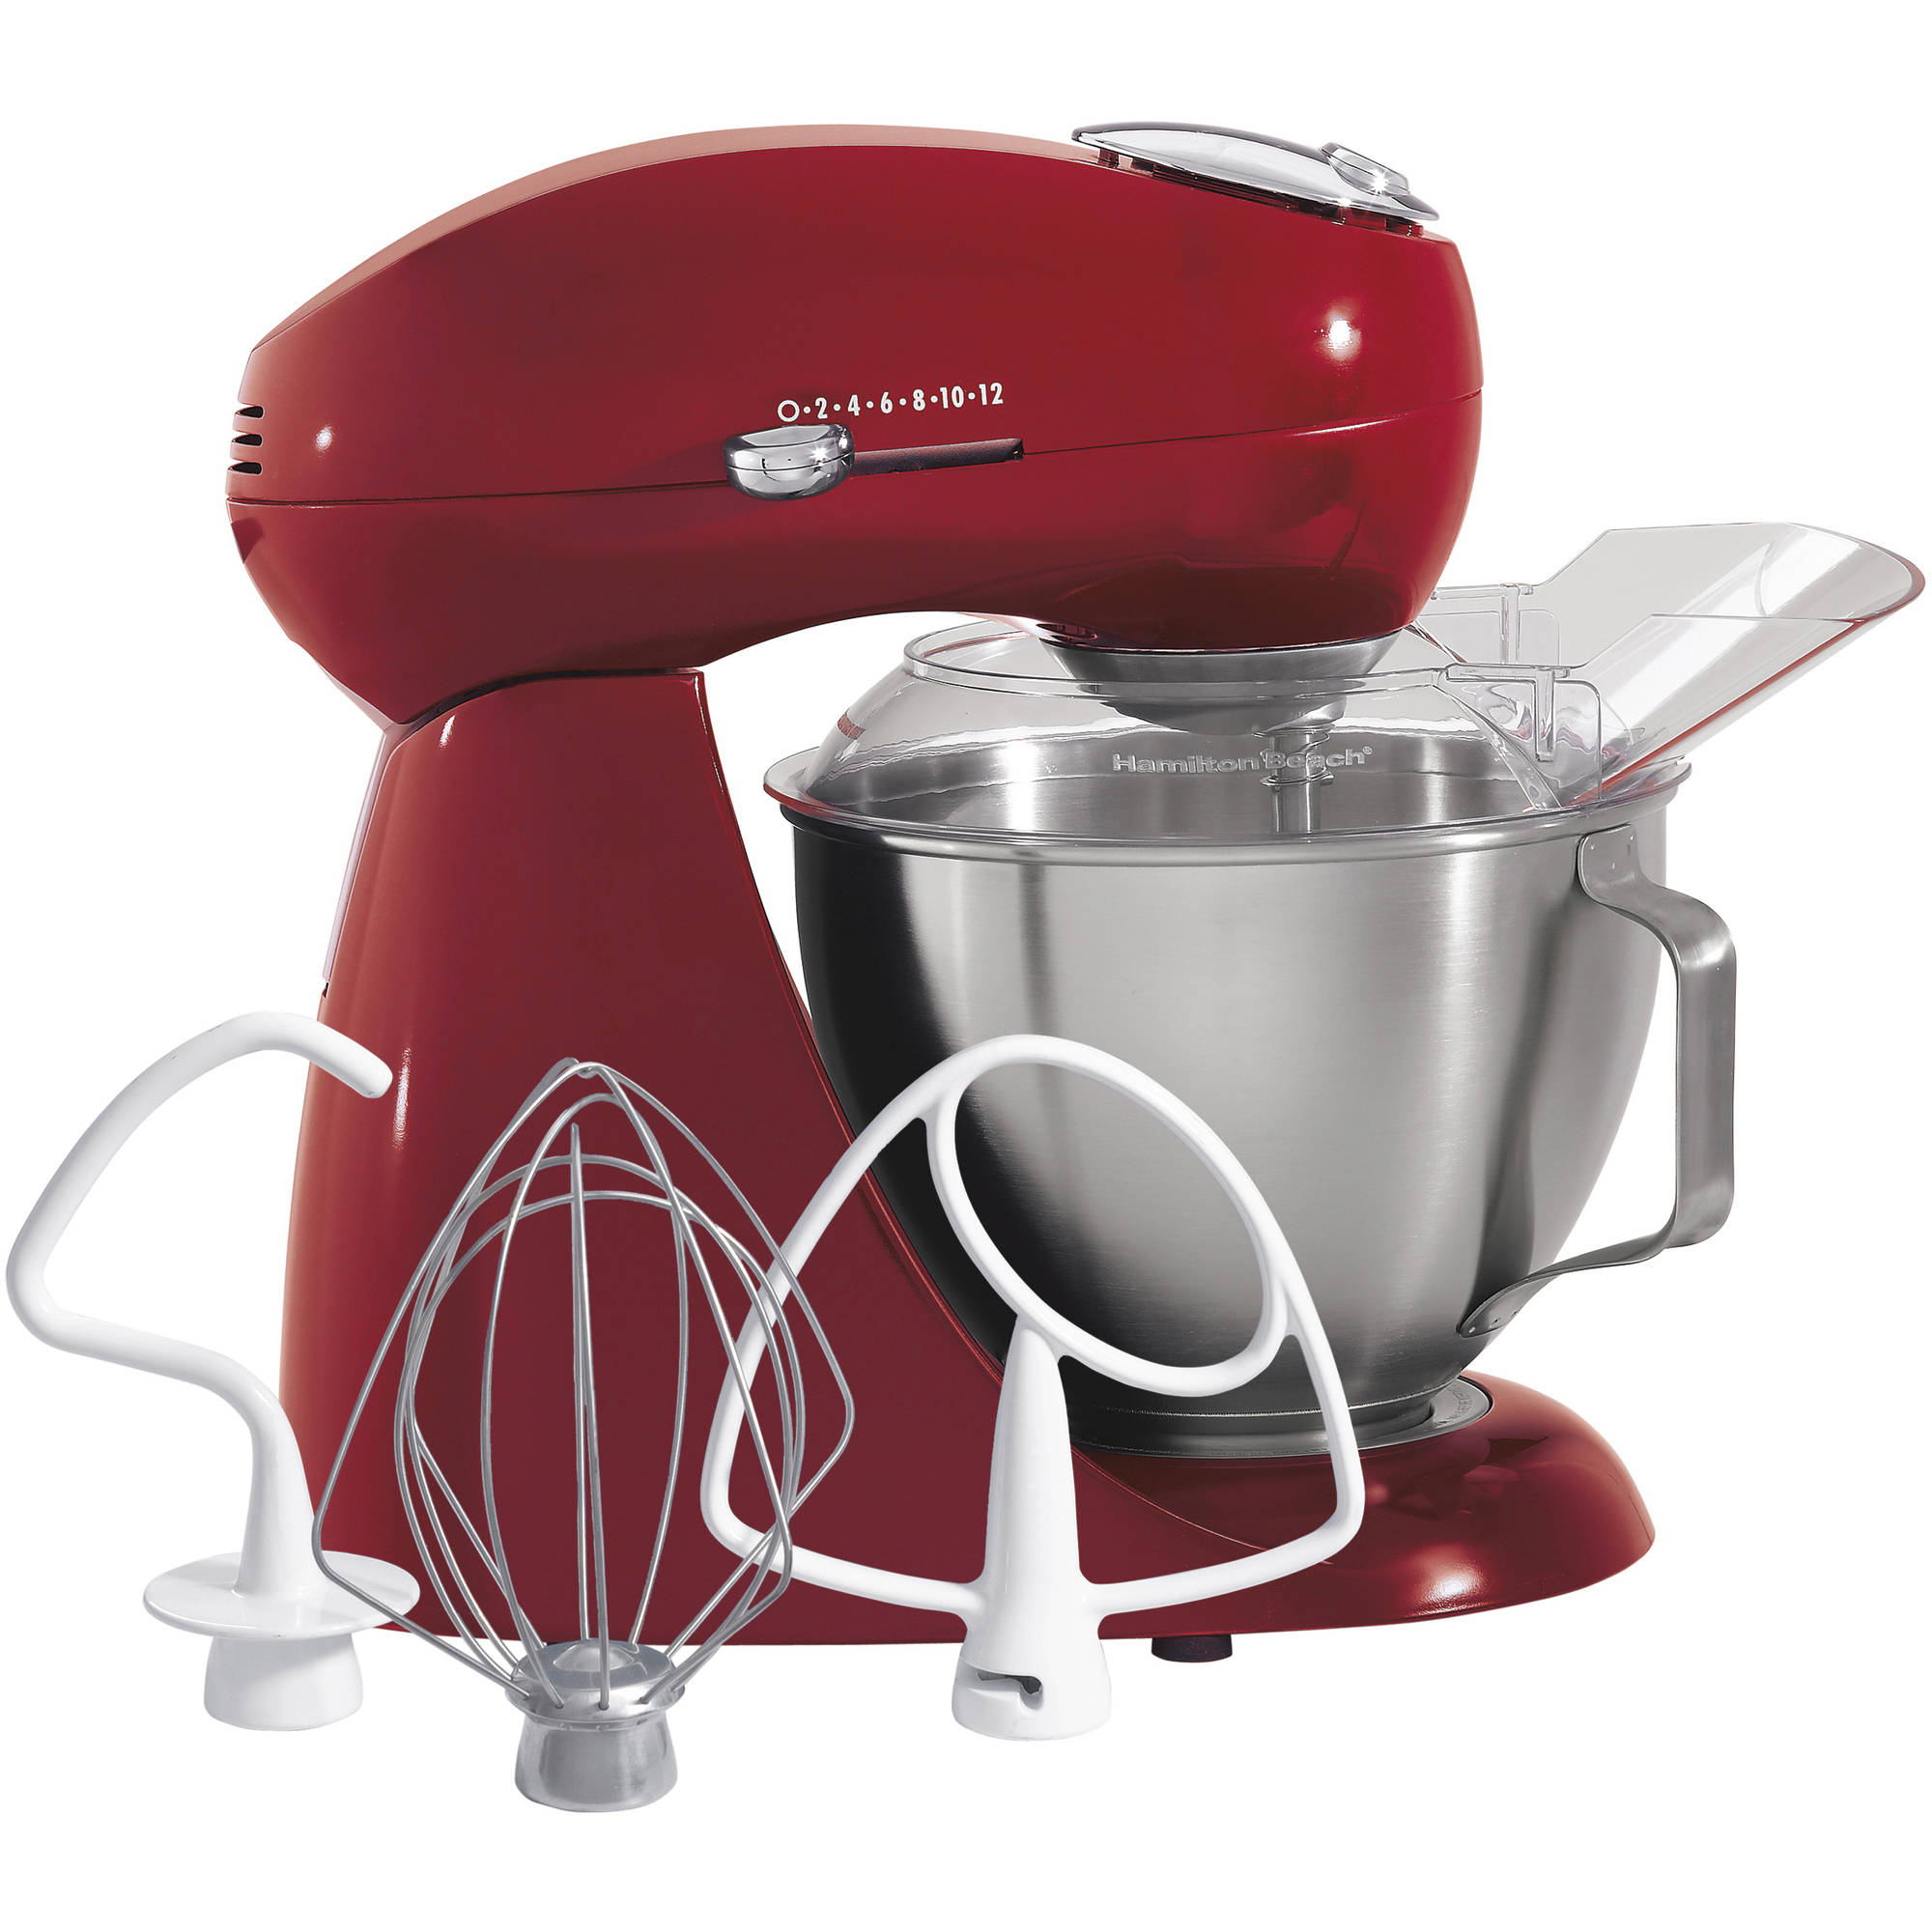 Hamilton Beach Eclectrics 4.5-Quart Stand Mixer